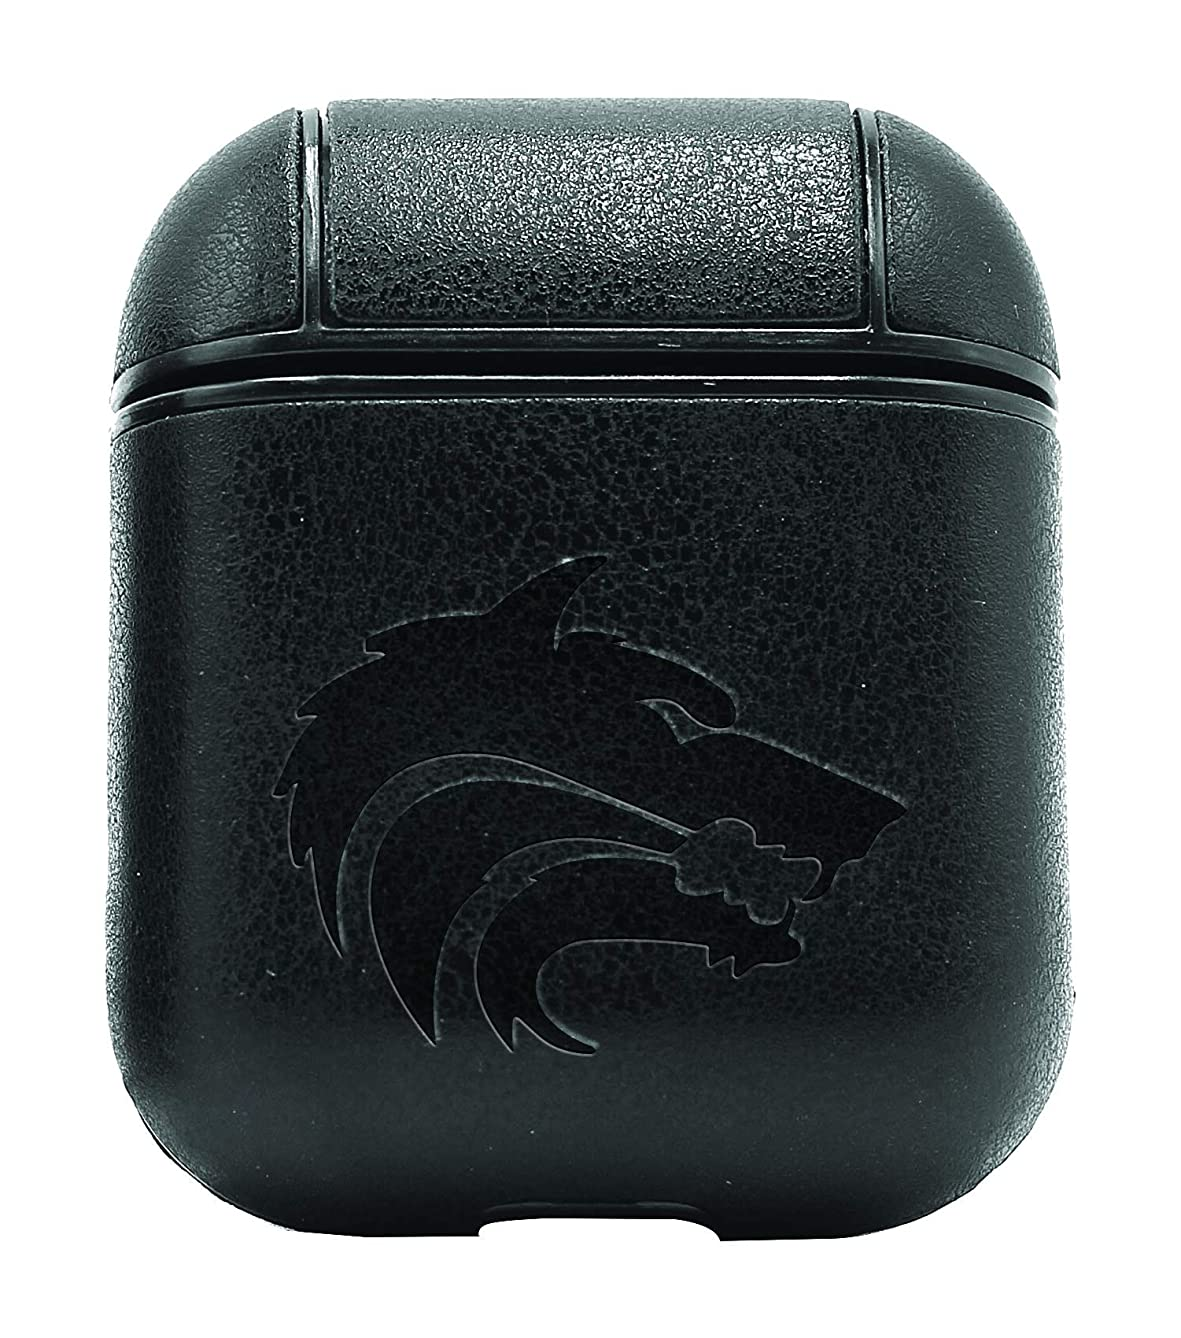 ICON Wolf Game of Thrones (Vintage Black) Air Pods Protective Leather Case Cover - a New Class of Luxury to Your AirPods - Premium PU Leather and Handmade exquisitely by Master Craftsmen